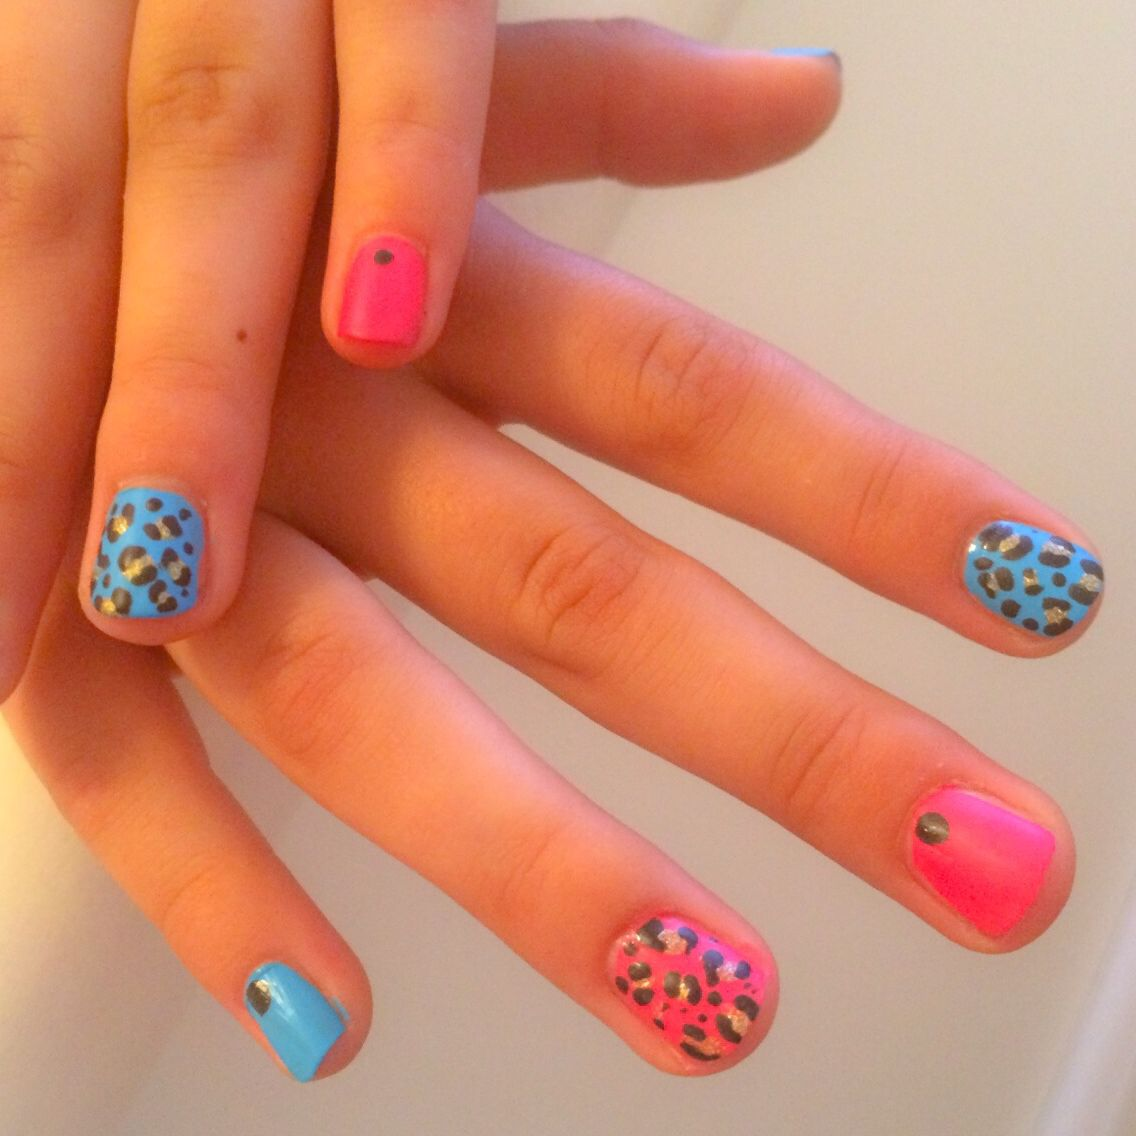 Mini mani - neon pink & blue leopard nail art with black | Nails ...